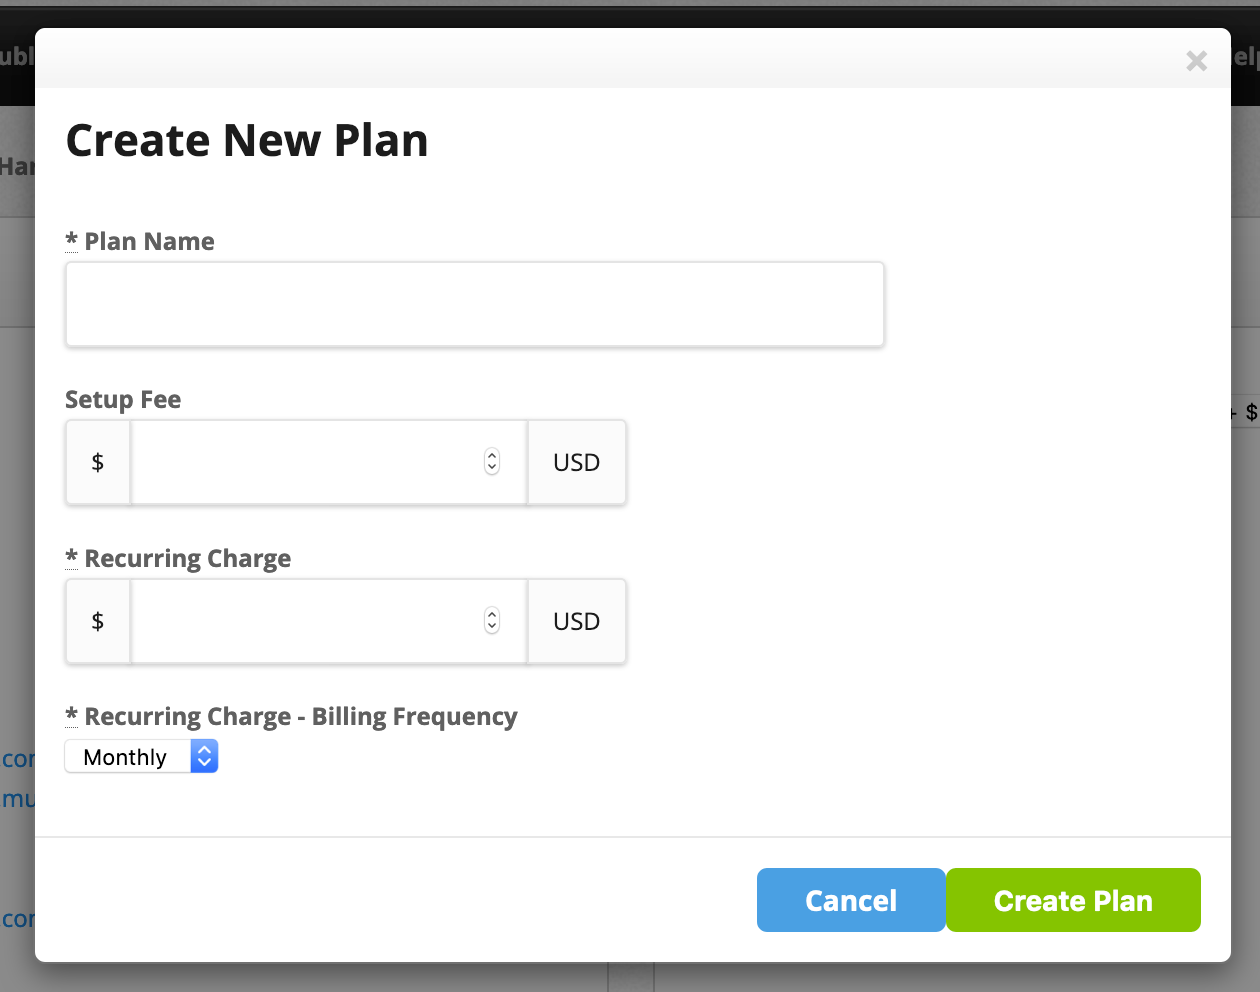 create-new-plan-details.png